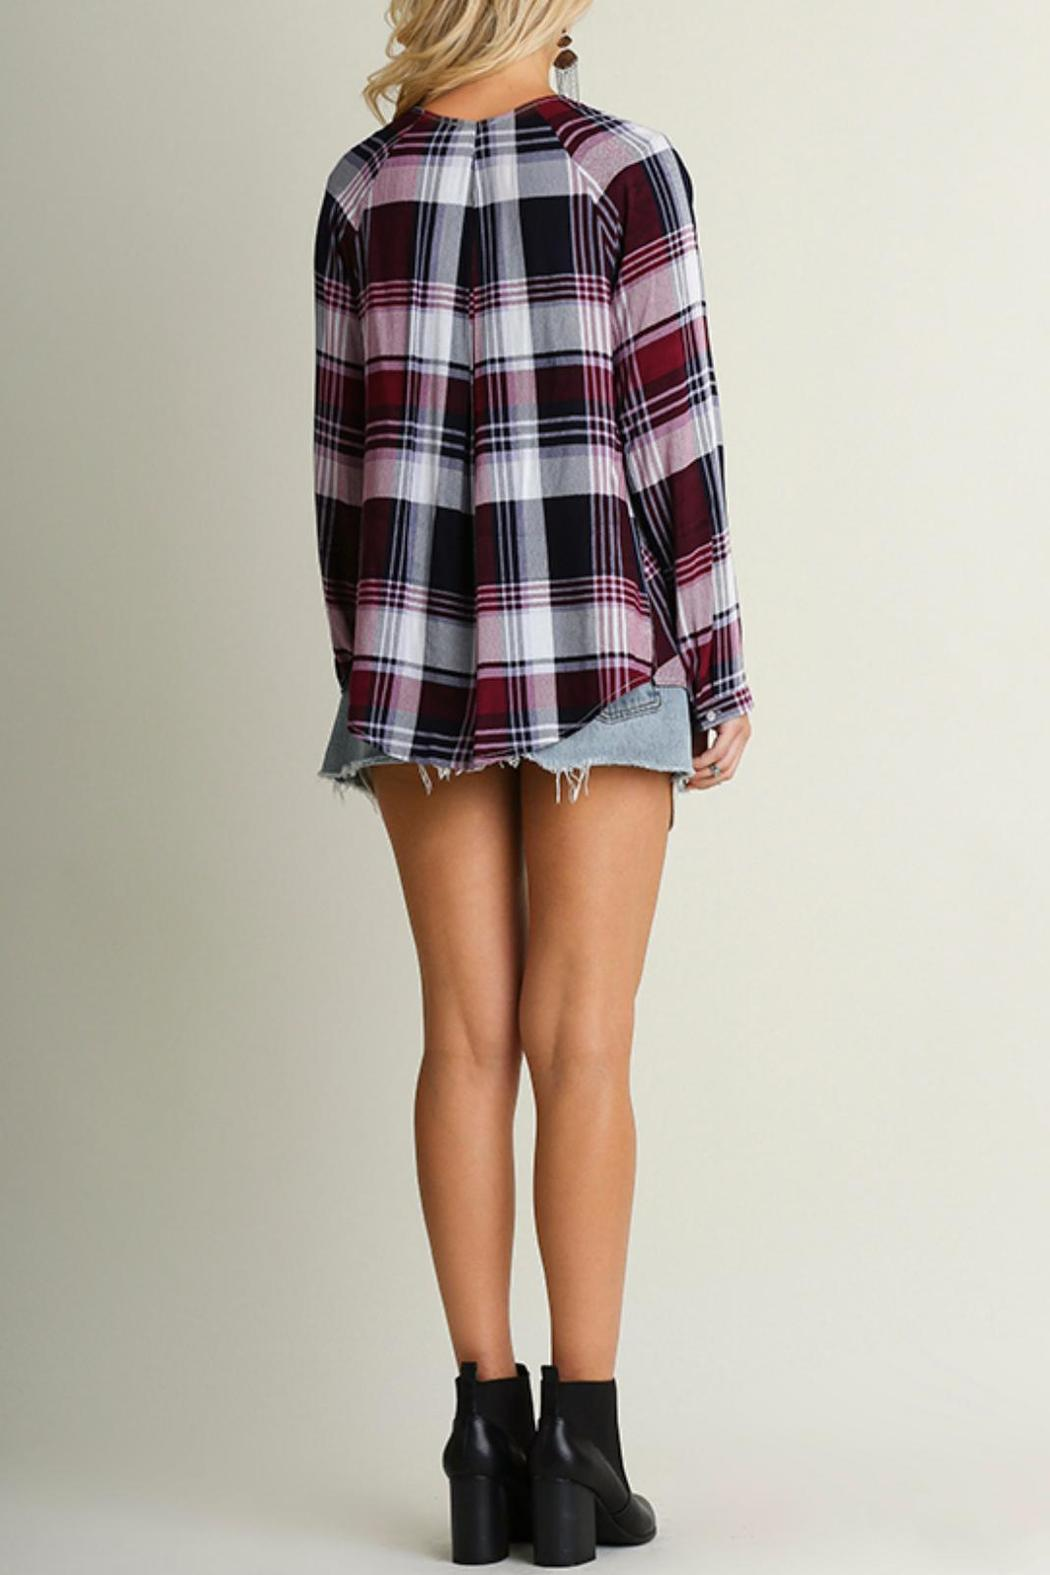 Umgee USA Crisscross Plaid Top - Side Cropped Image